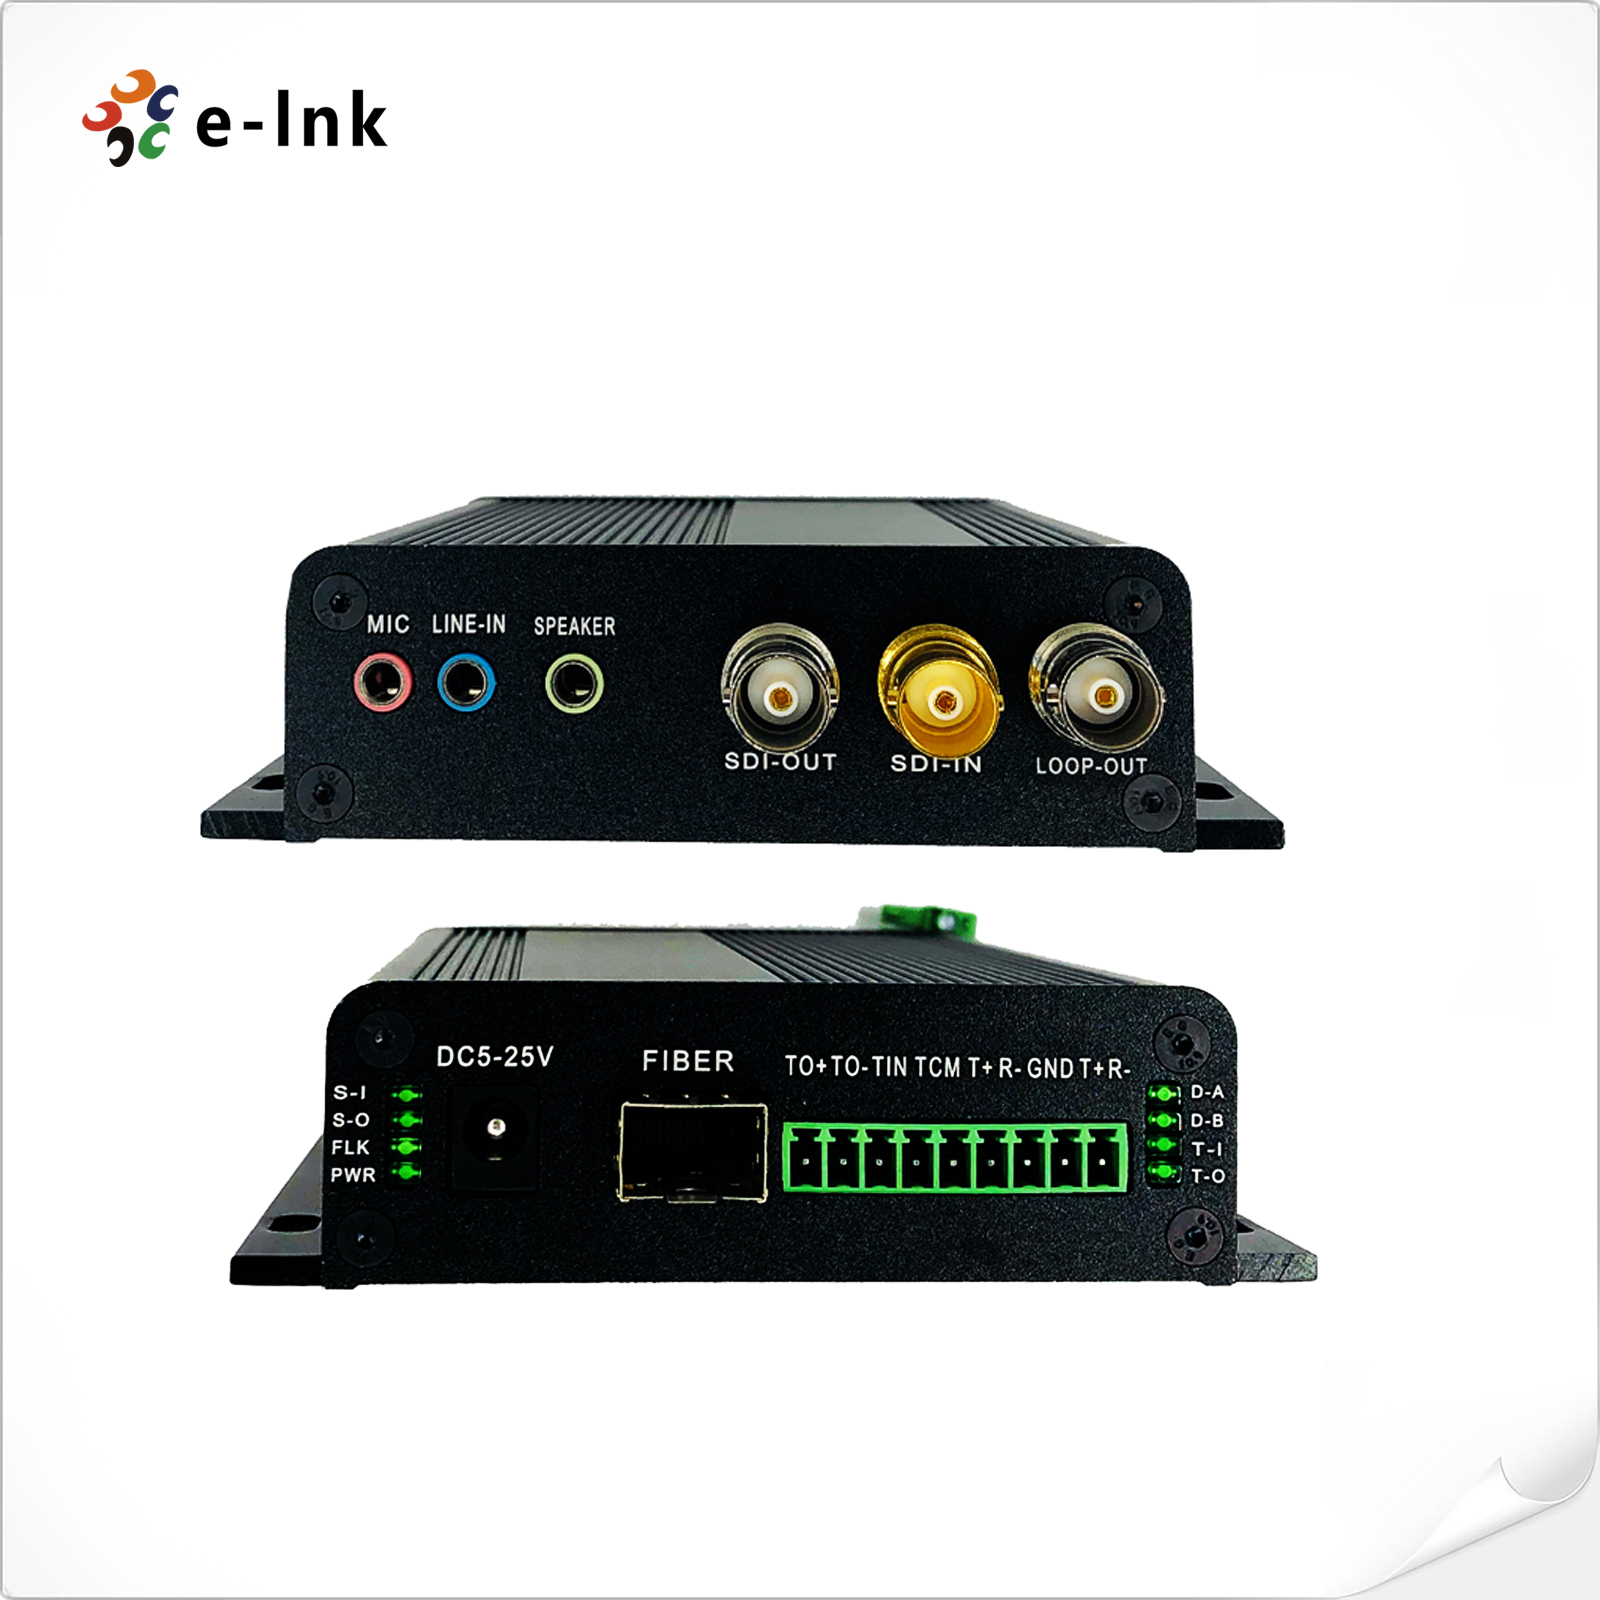 2 Ch Bidirectional 3G-SDI Video Fiber Converter with Tally + RS485/RS422 + Stereo Audio + Microphone